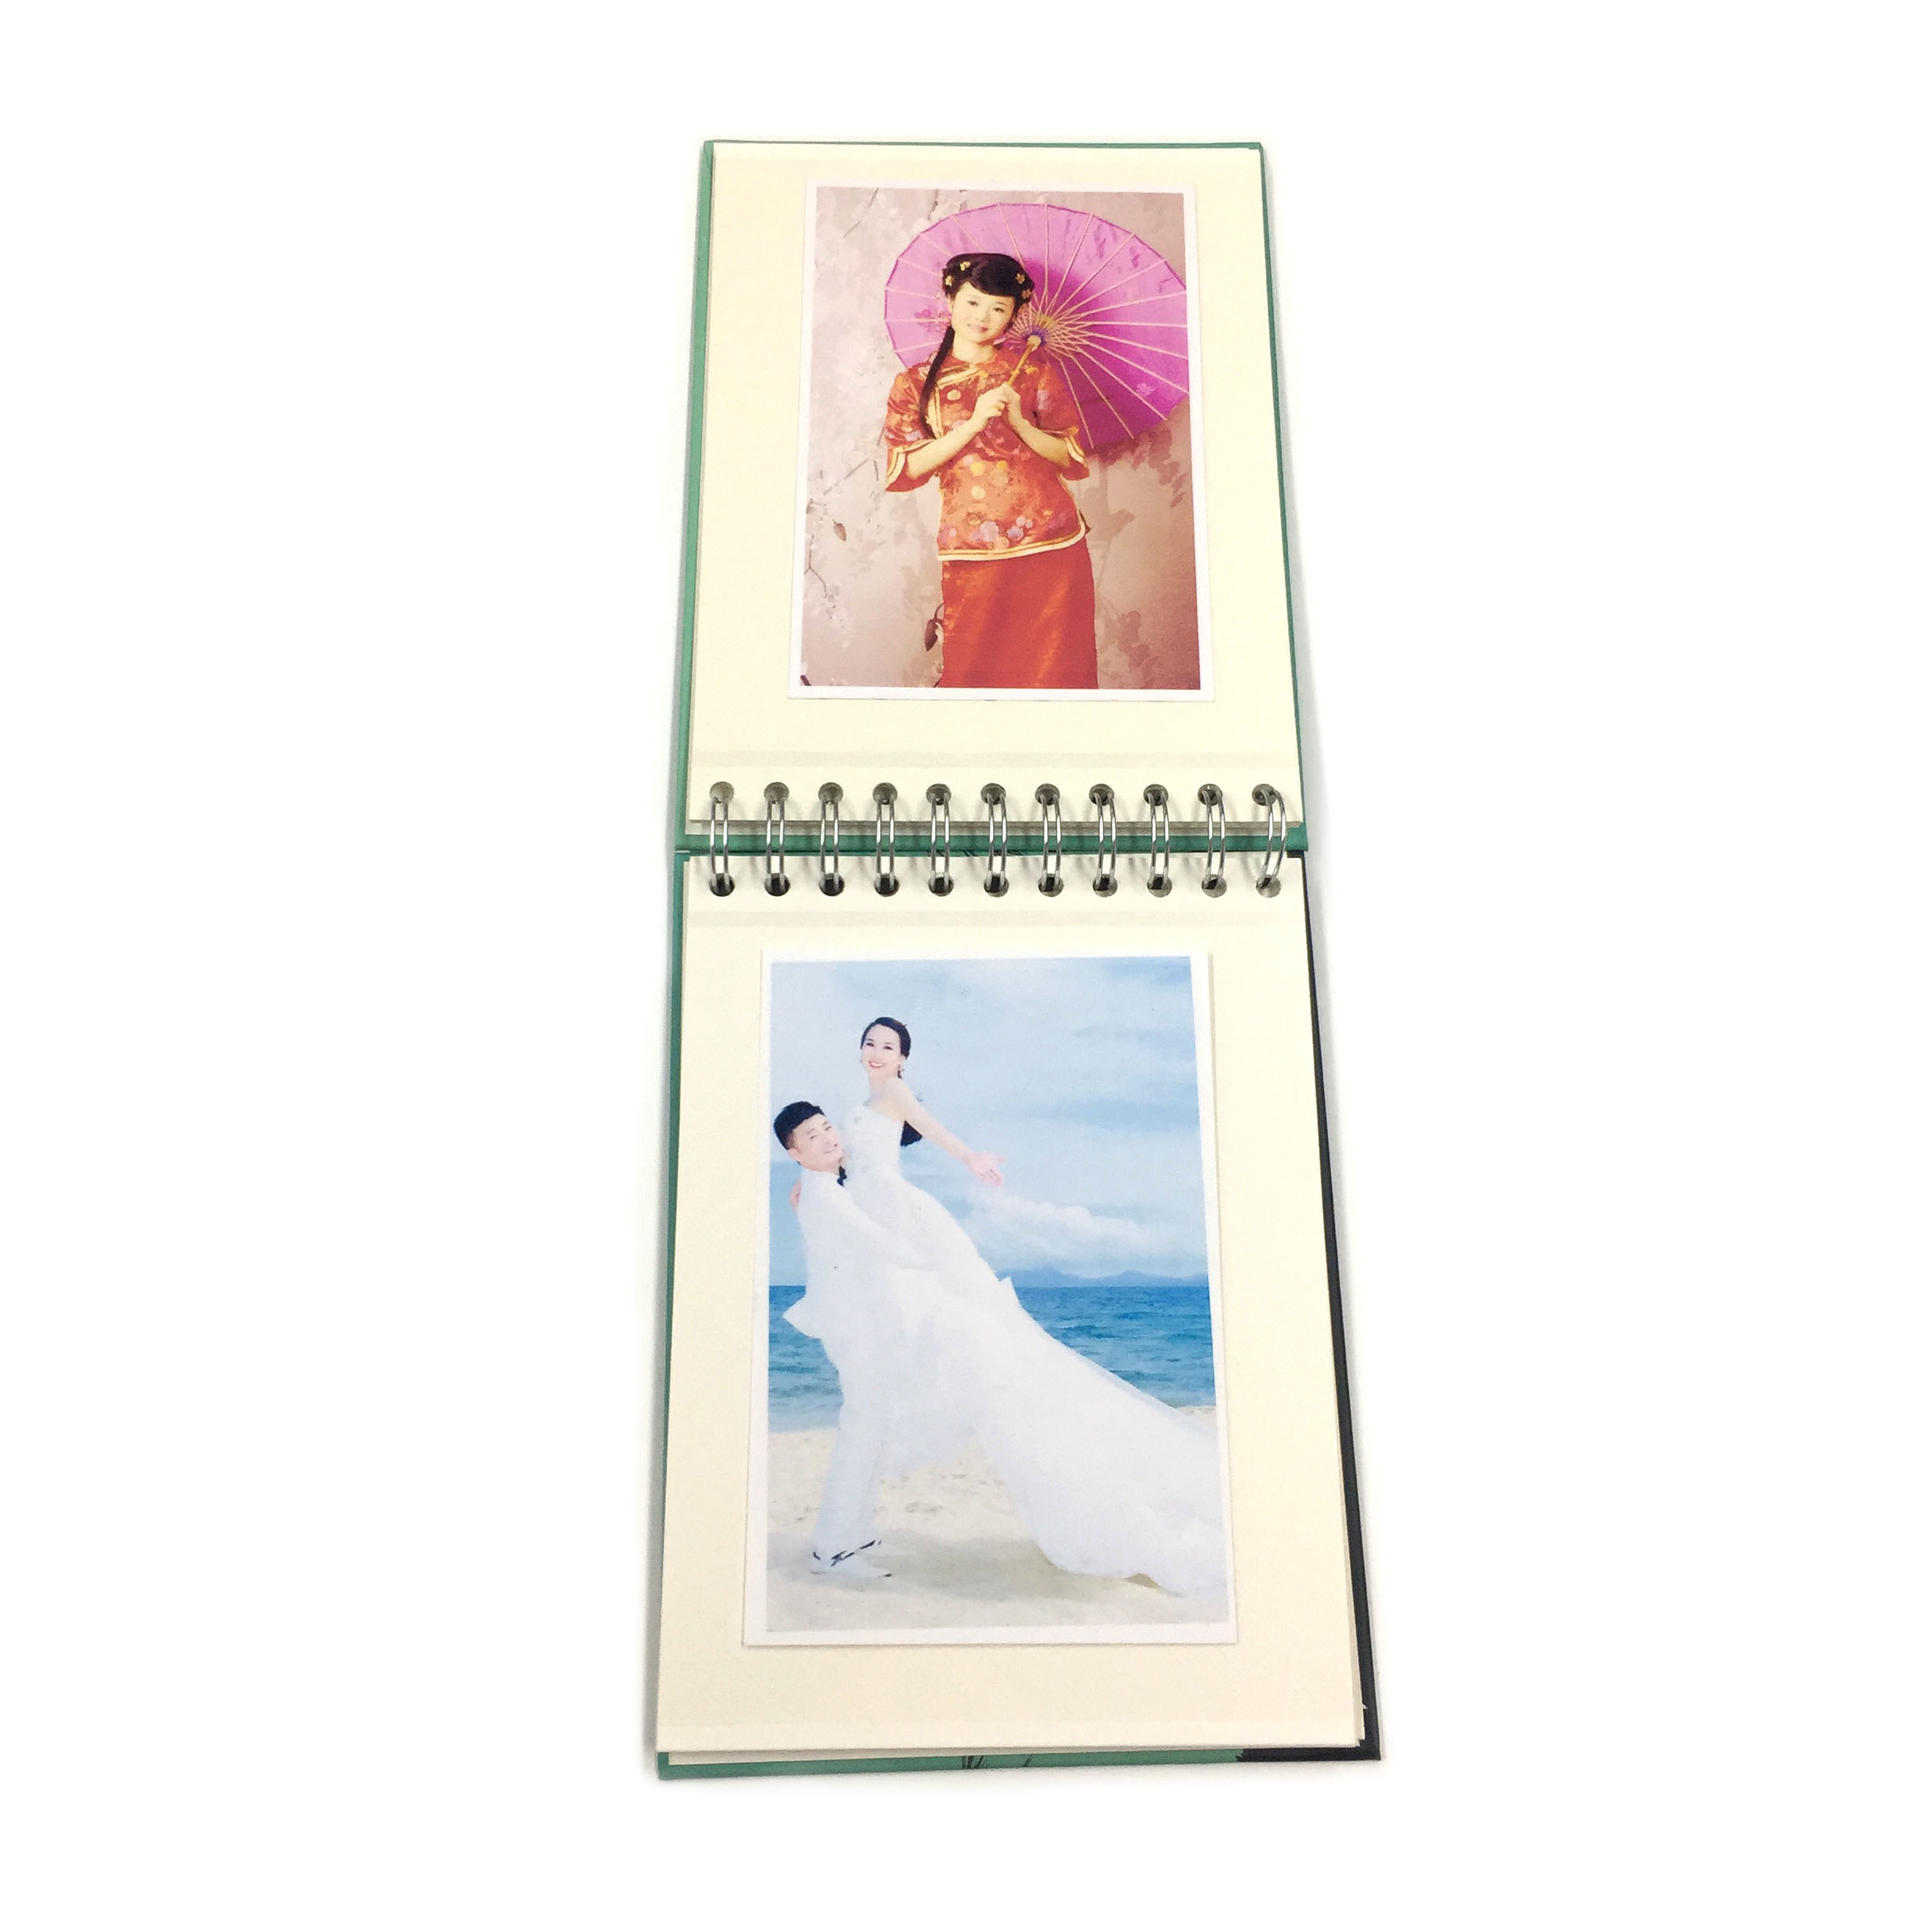 Flamigo A5 Self Adhesive Photo Album With 10 PVC Sheet Inner Pages